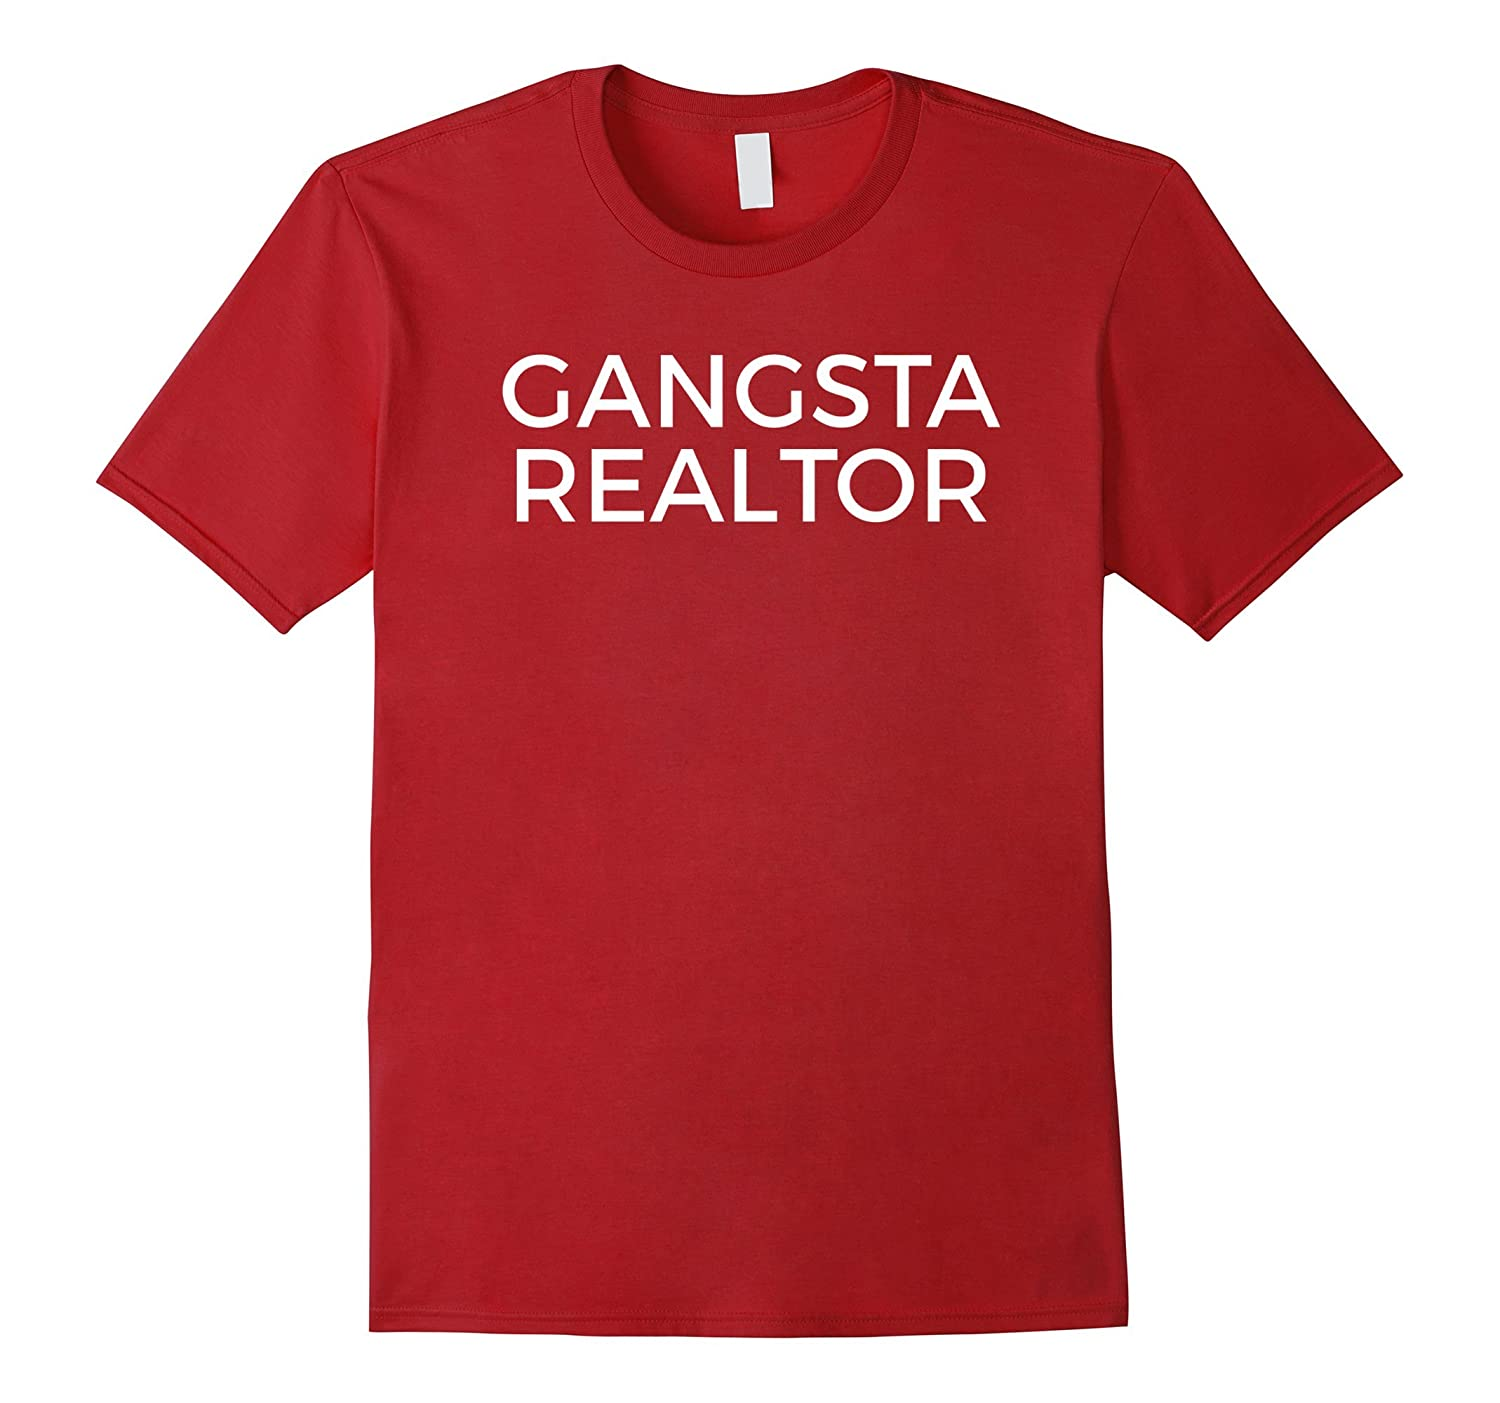 Funny Realtor T-Shirt – Novelty Realtor Tee Saying